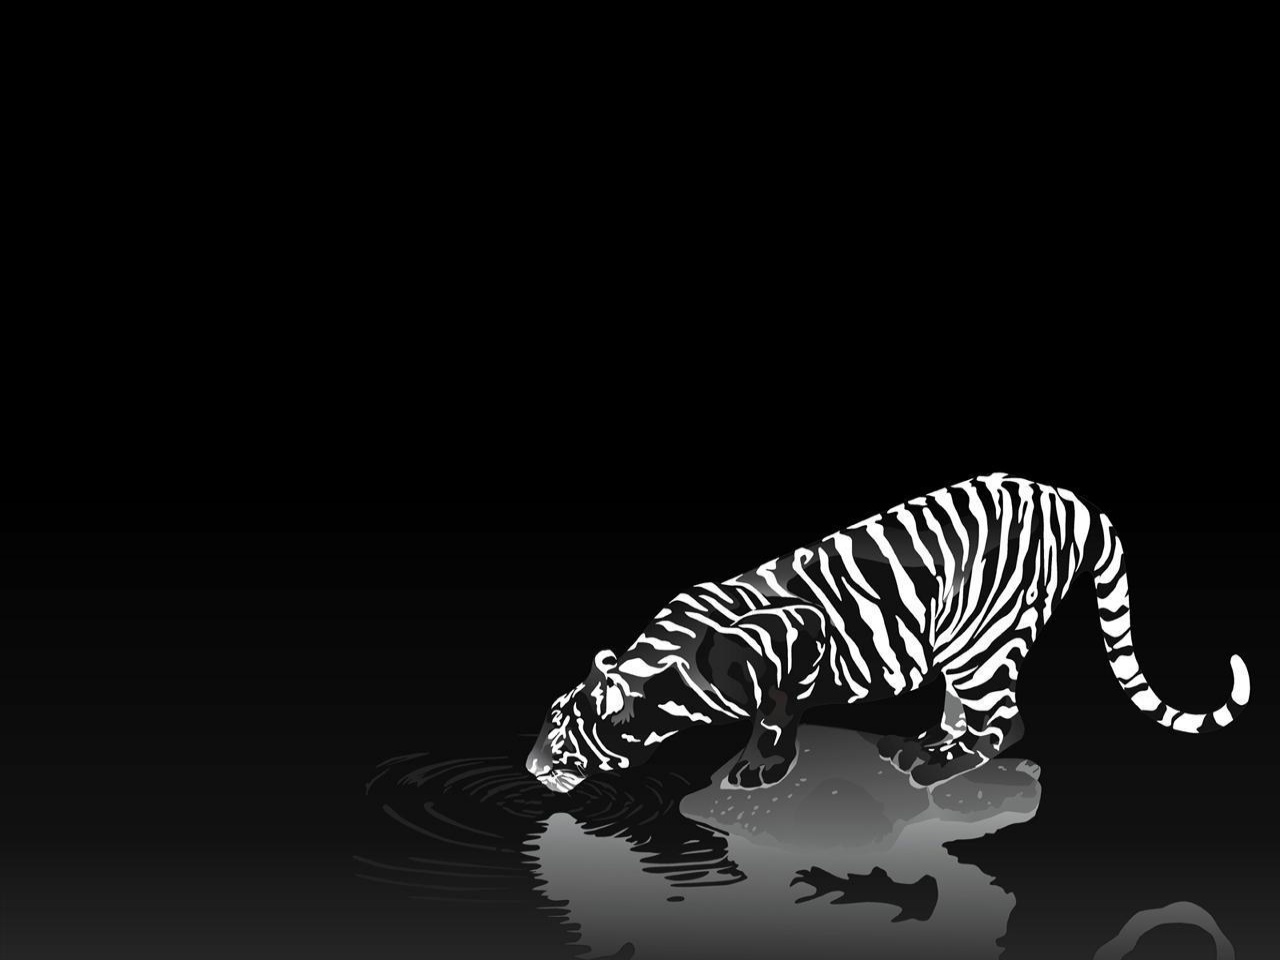 http://2.bp.blogspot.com/-Hoo11FkQ-lM/UF9ce_s2iVI/AAAAAAAAAQw/vsuTPc9hoZ8/s1600/tiger-3d-black-and-white-hd-wallpaper.jpg